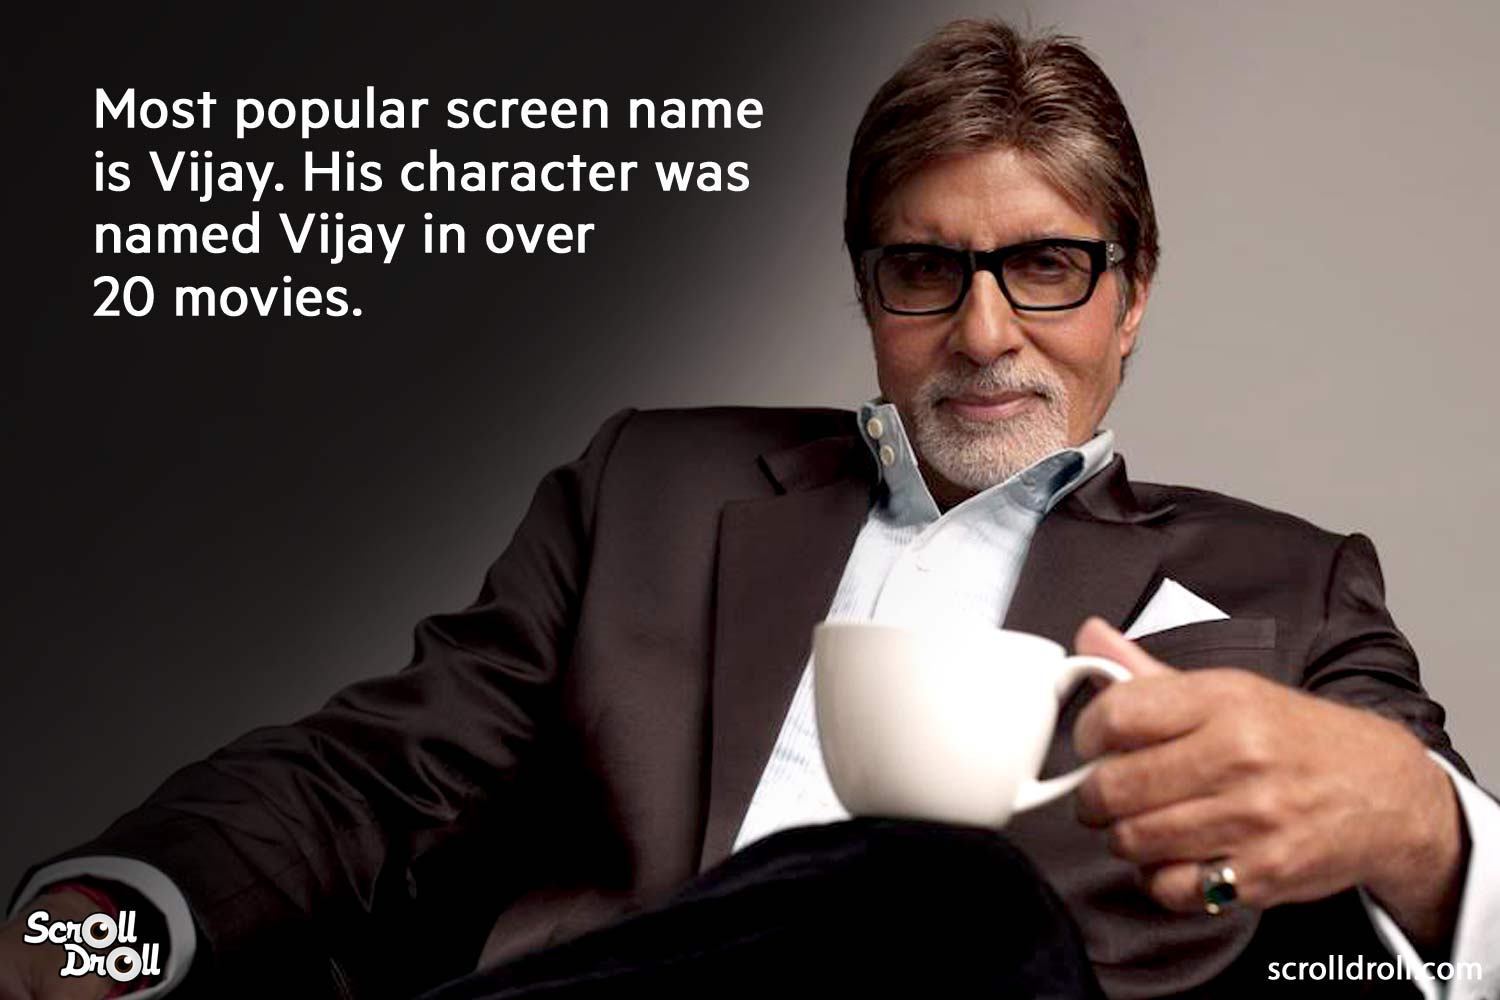 most poplar screen name is vijay. his character was named vijay over 20 movies-amitabh bachchan facts